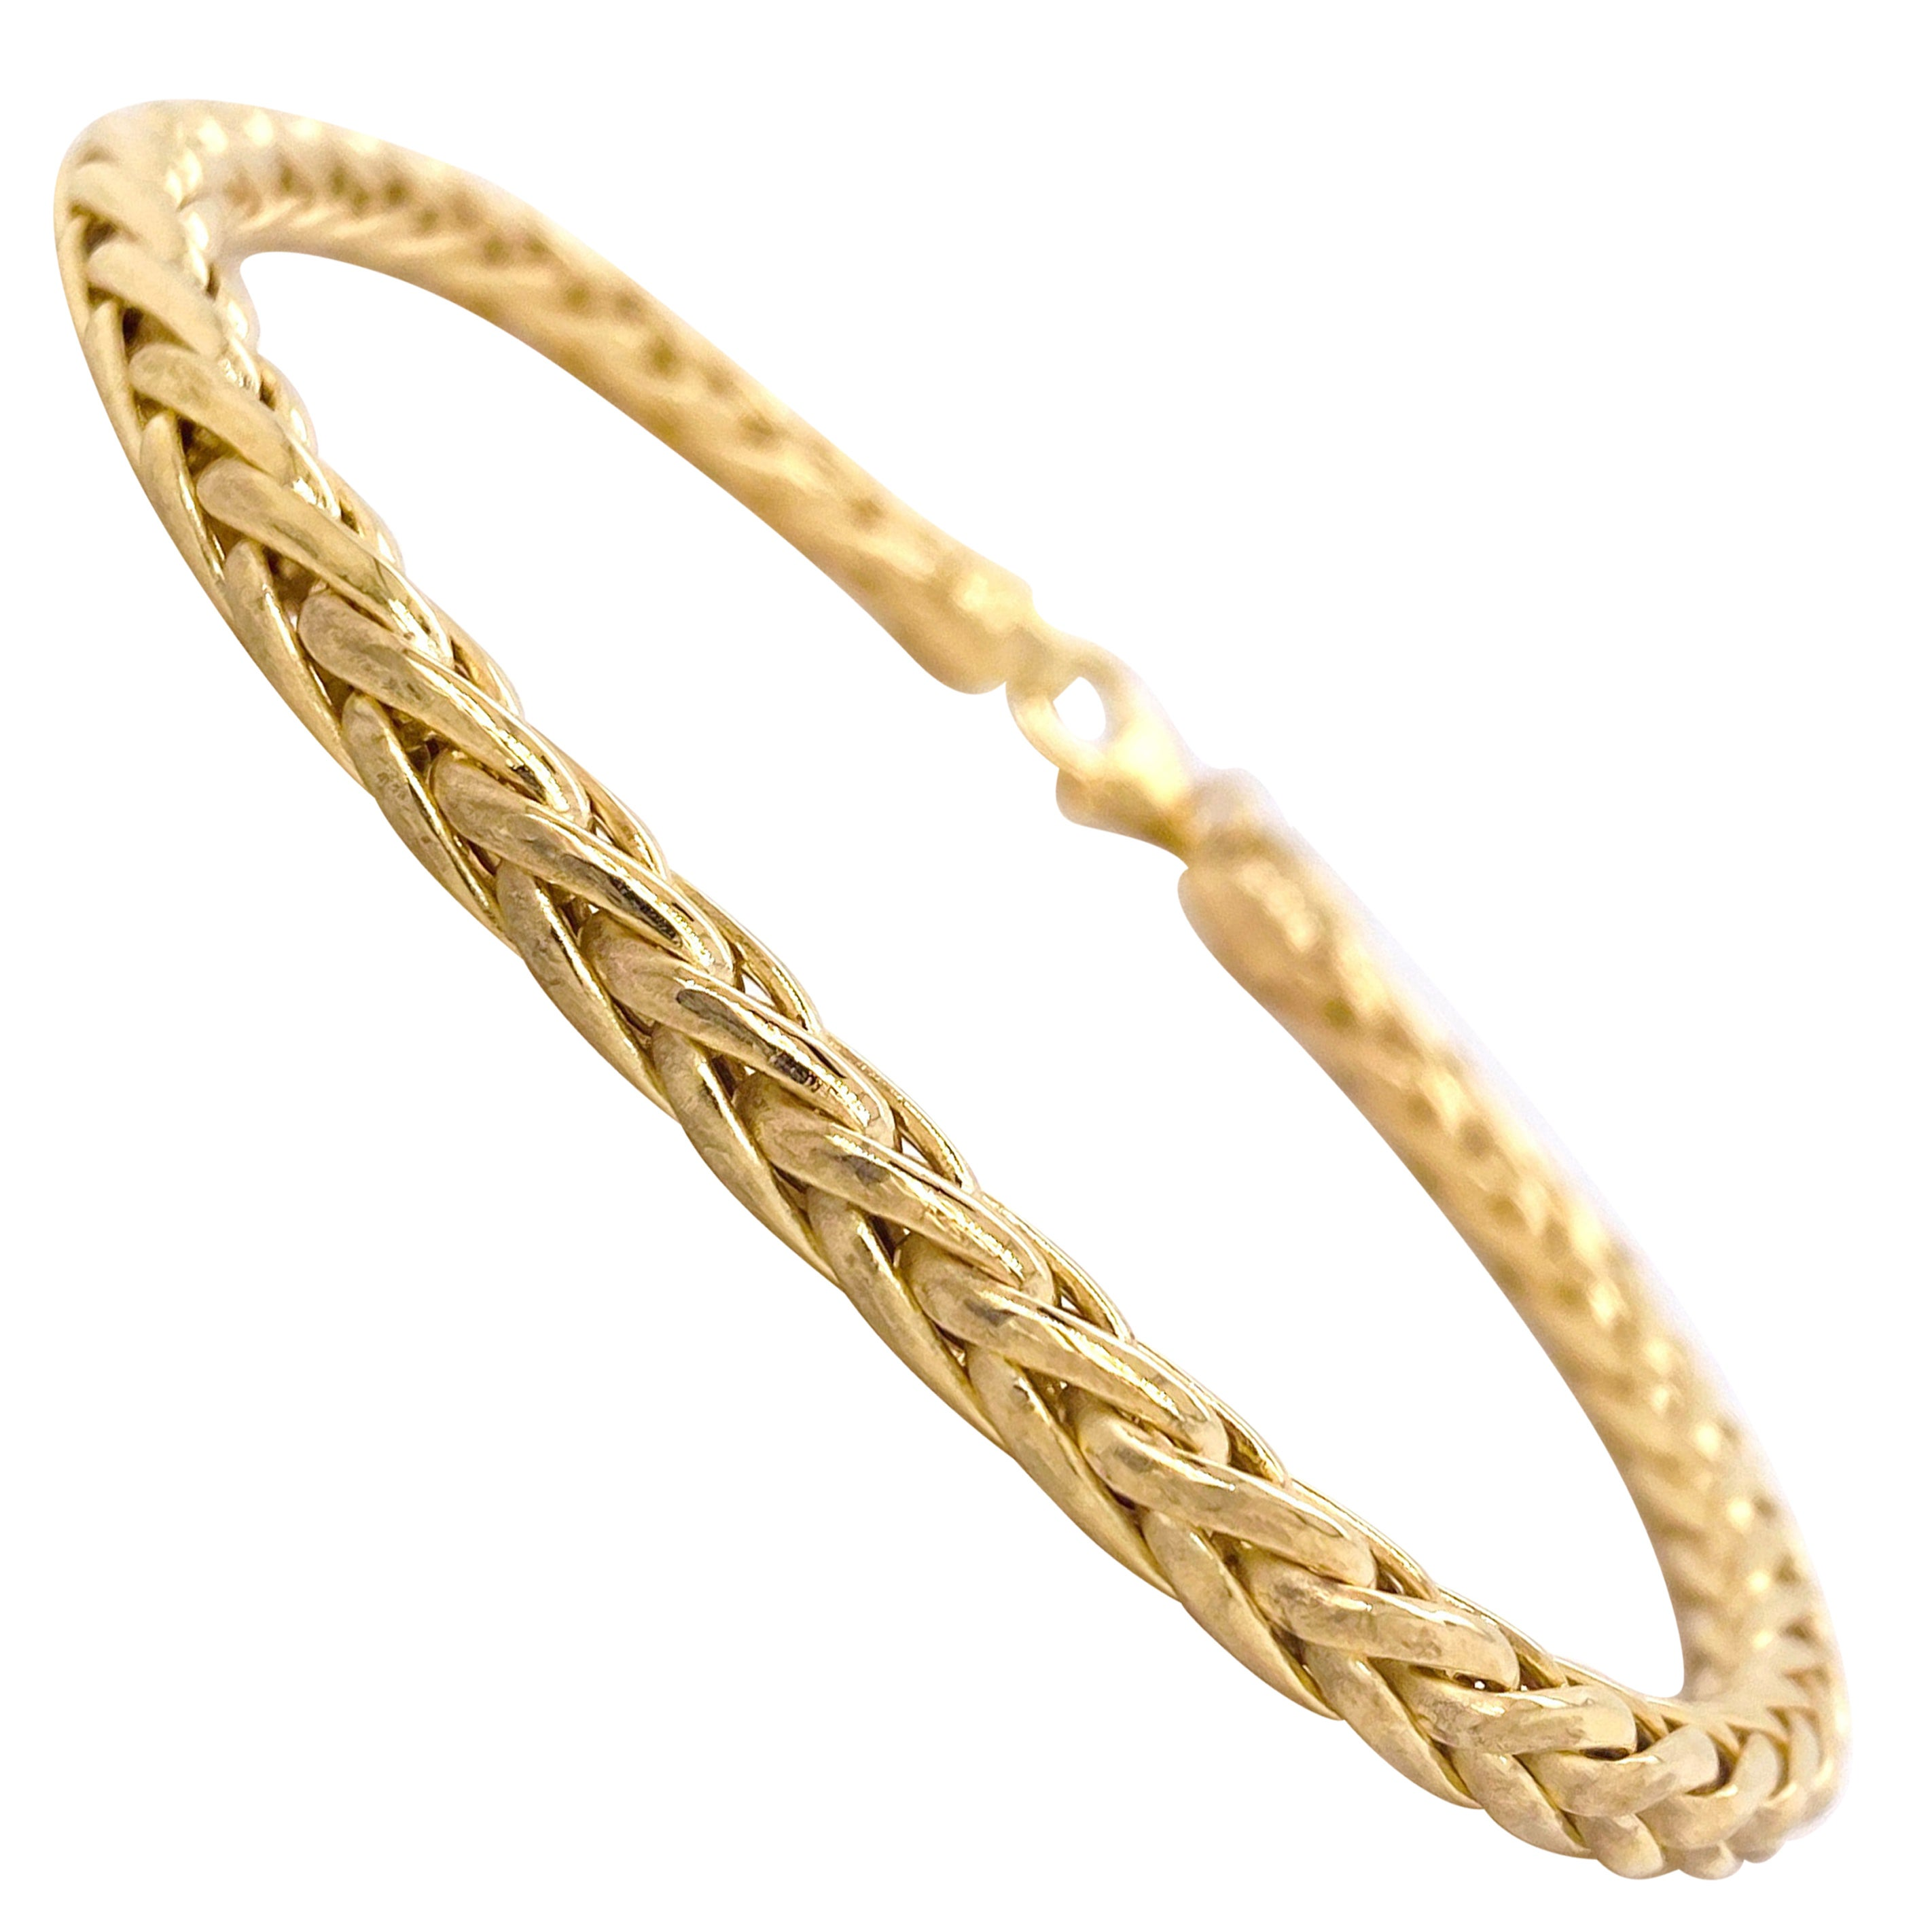 Wheat Chain Bracelet 14 Karat Yellow Gold Men's or Women's Chain Bracelet, 9gm